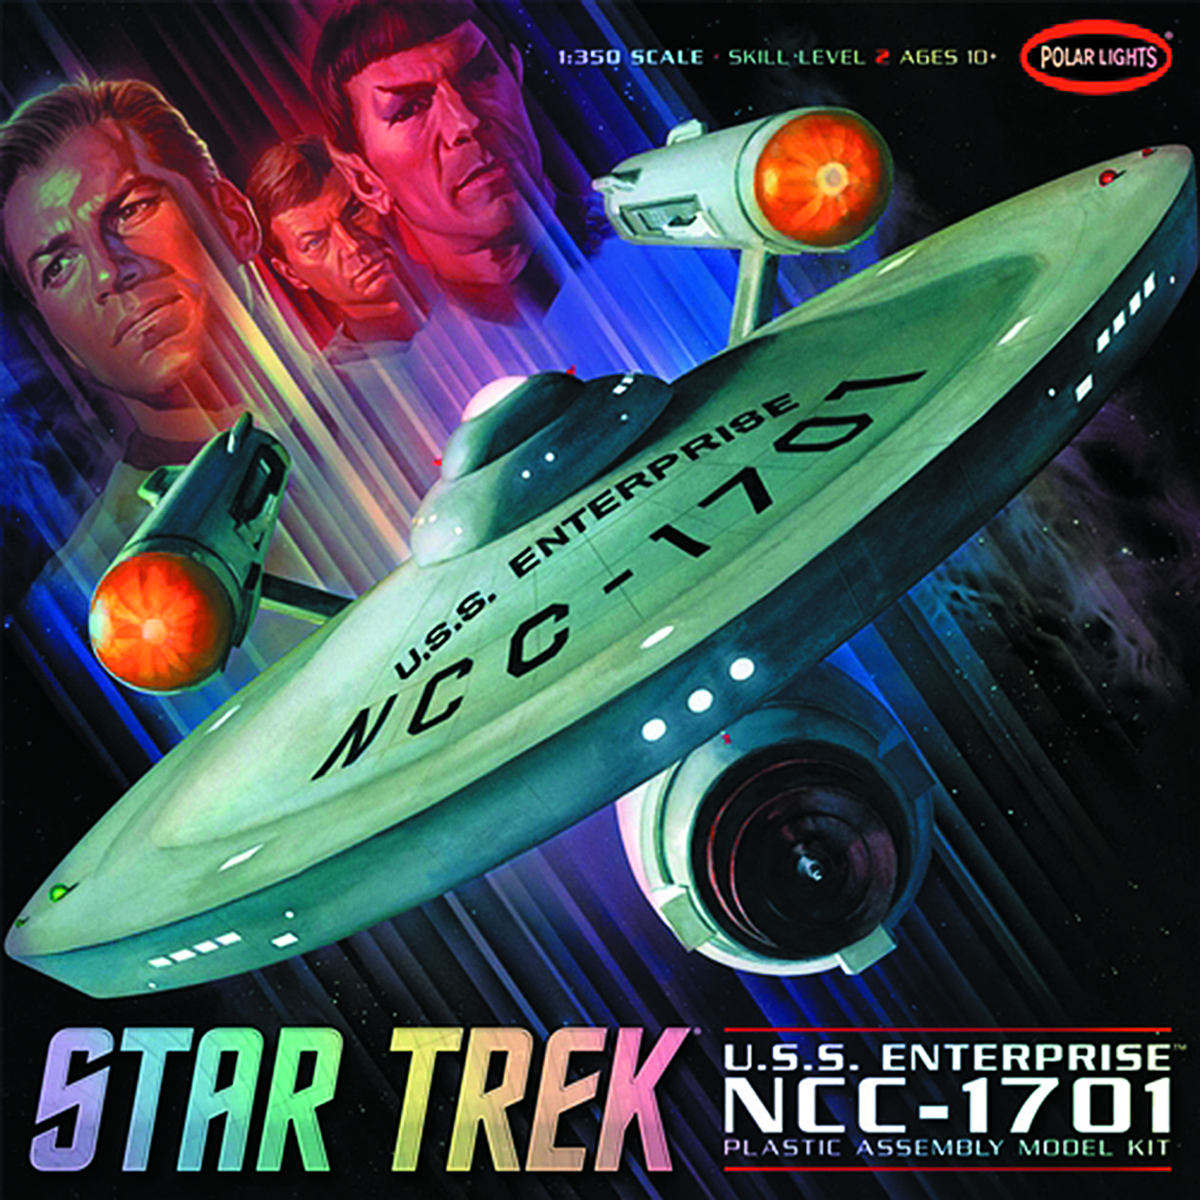 ST TOS ENTERPRISE NCC-1701 1/350 SCALE MODEL KIT